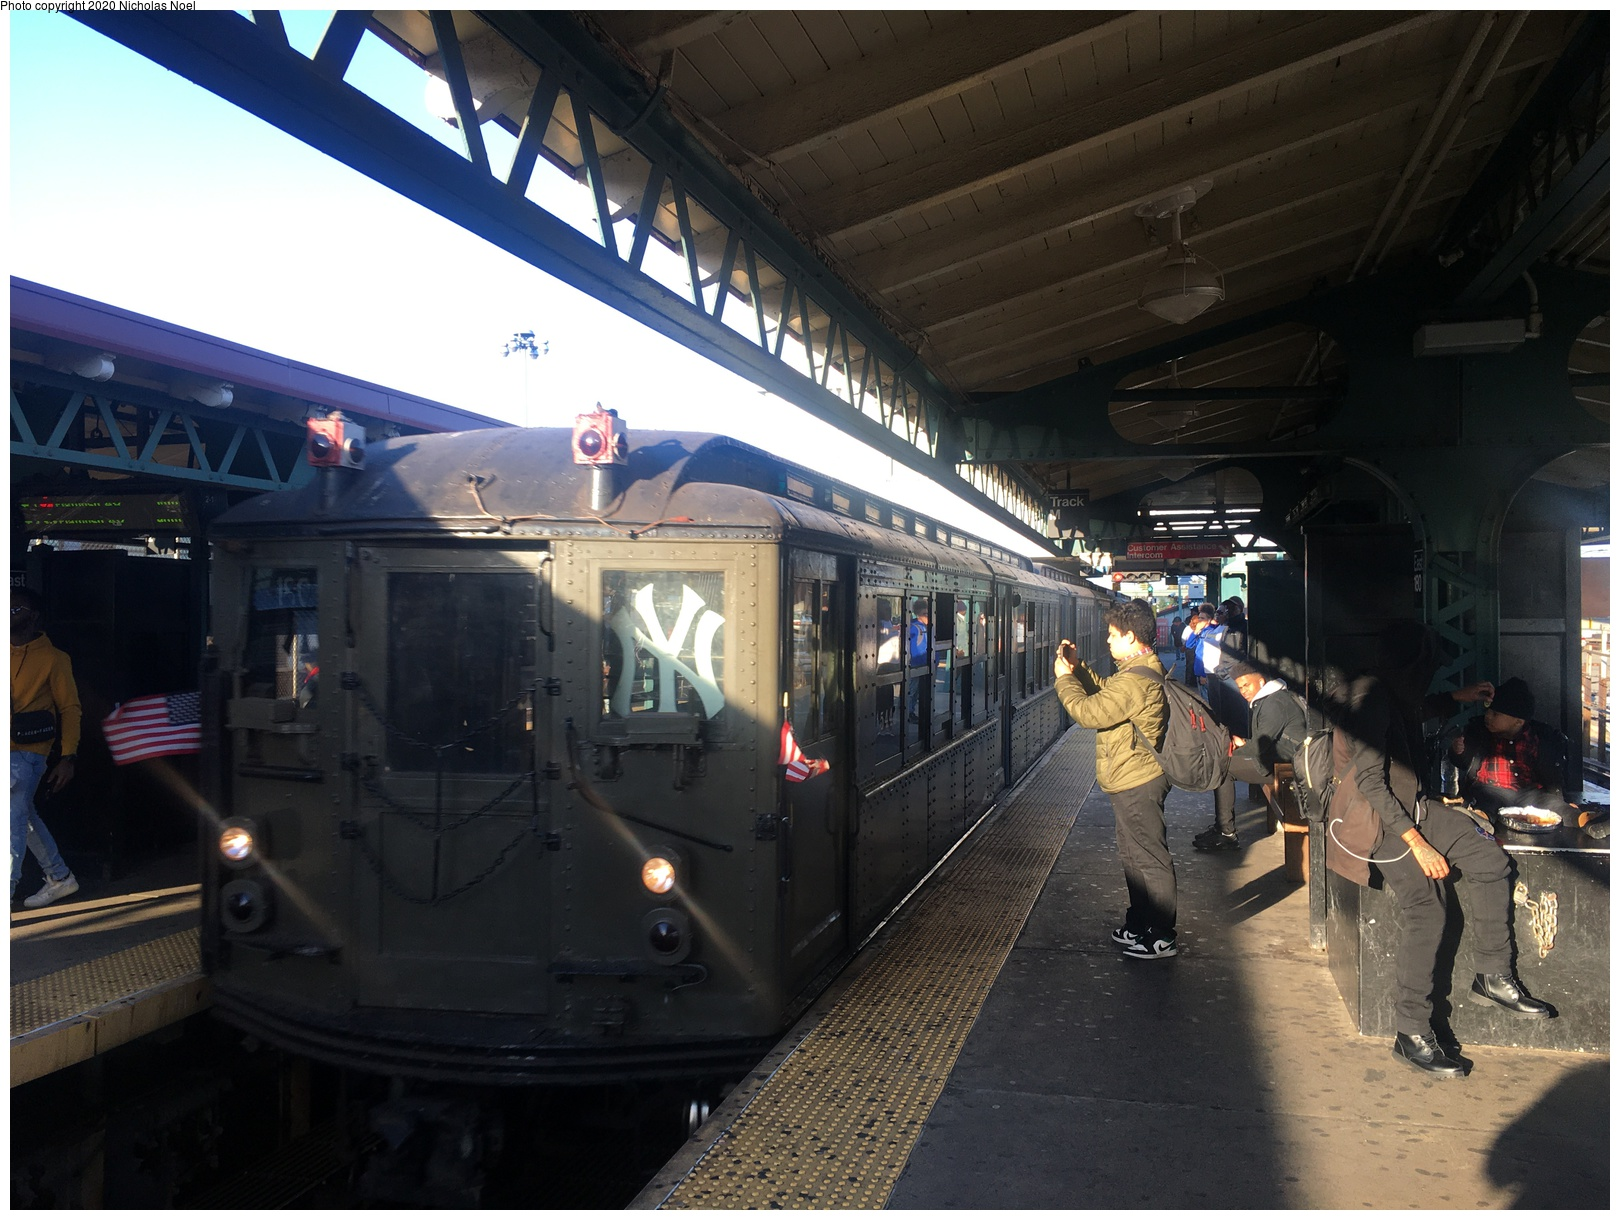 (214k, 806x820)<br><b>Country:</b> United States<br><b>City:</b> New York<br><b>System:</b> New York City Transit<br><b>Line:</b> IRT West Side Line<br><b>Location:</b> Chambers Street <br><b>Car:</b> Low-V  <br><b>Photo by:</b> Joel Shanus<br><b>Viewed (this week/total):</b> 7 / 1826